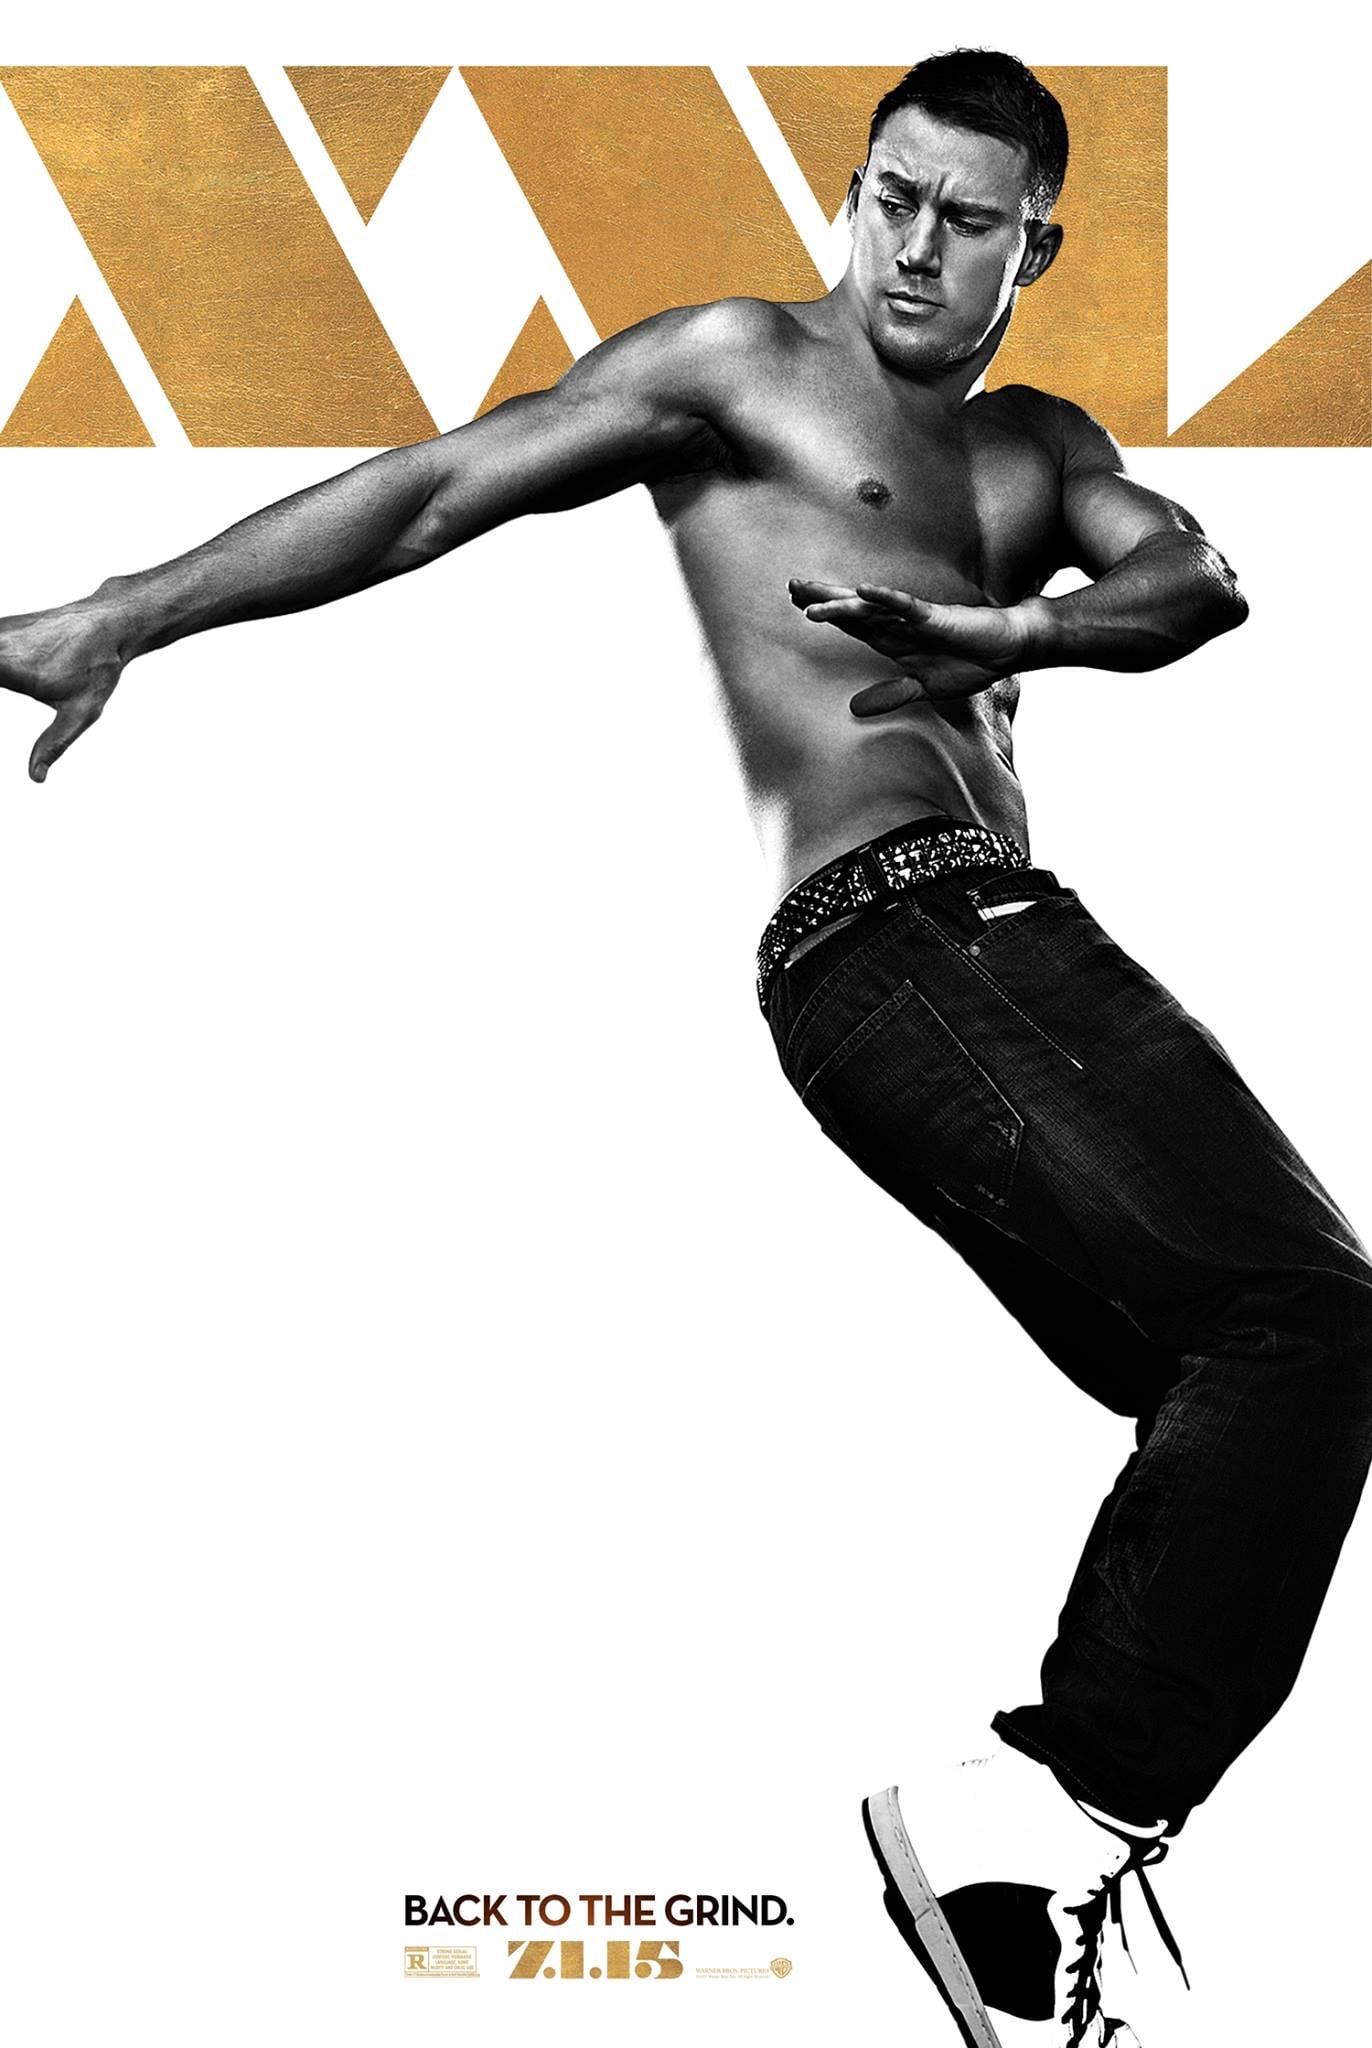 Magic Mike XXL poster with topless Channing Tatum dancing